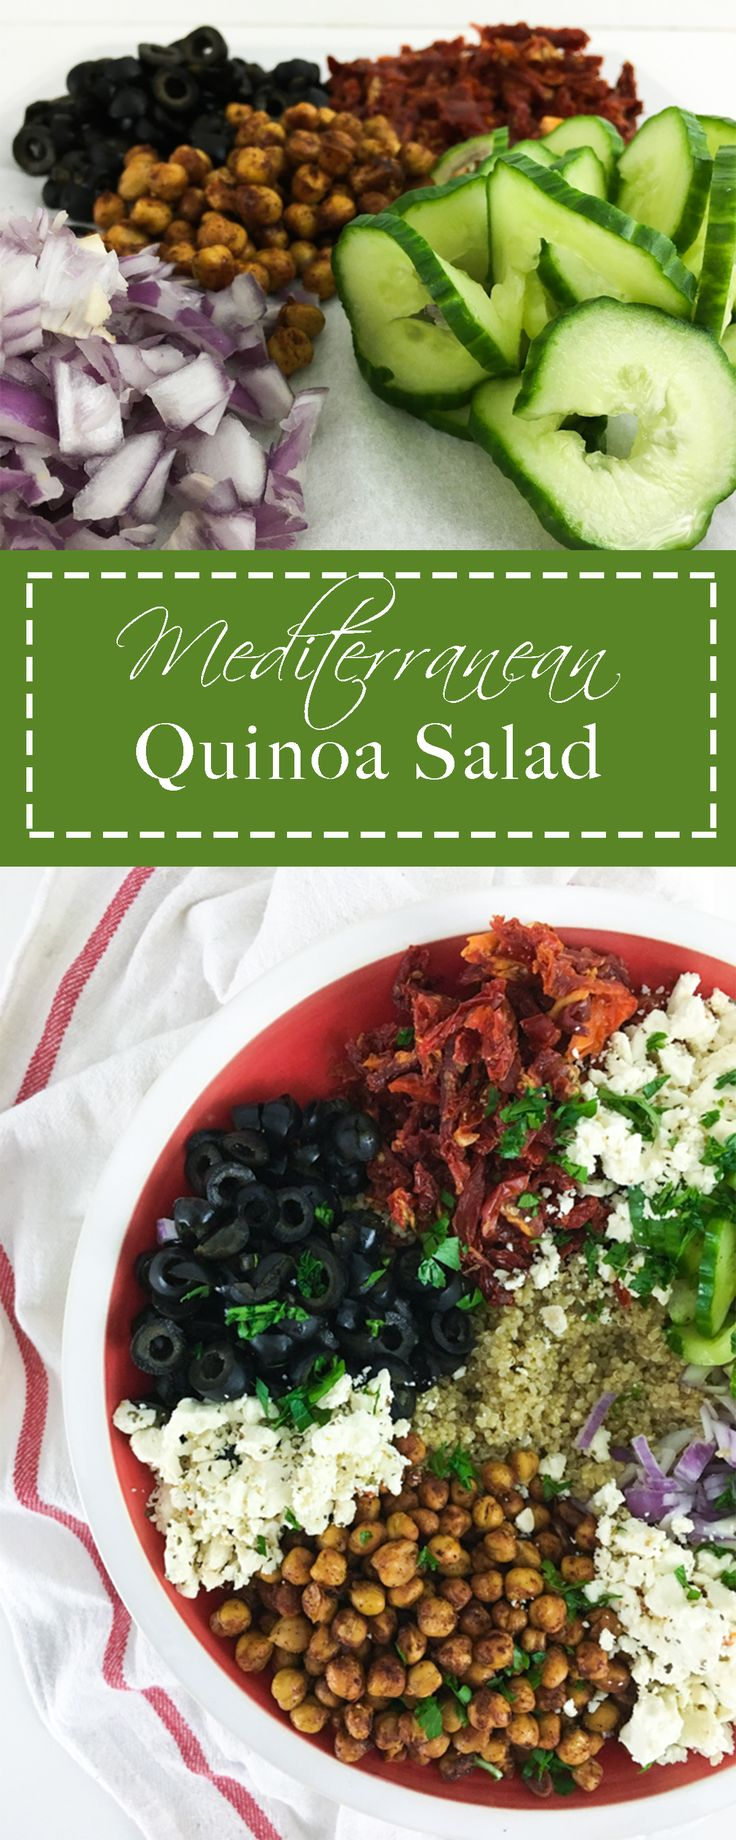 Mediterranean Quinoa Salad is loaded with flavor and healthy, let this be a new go to weekly salad recipe!